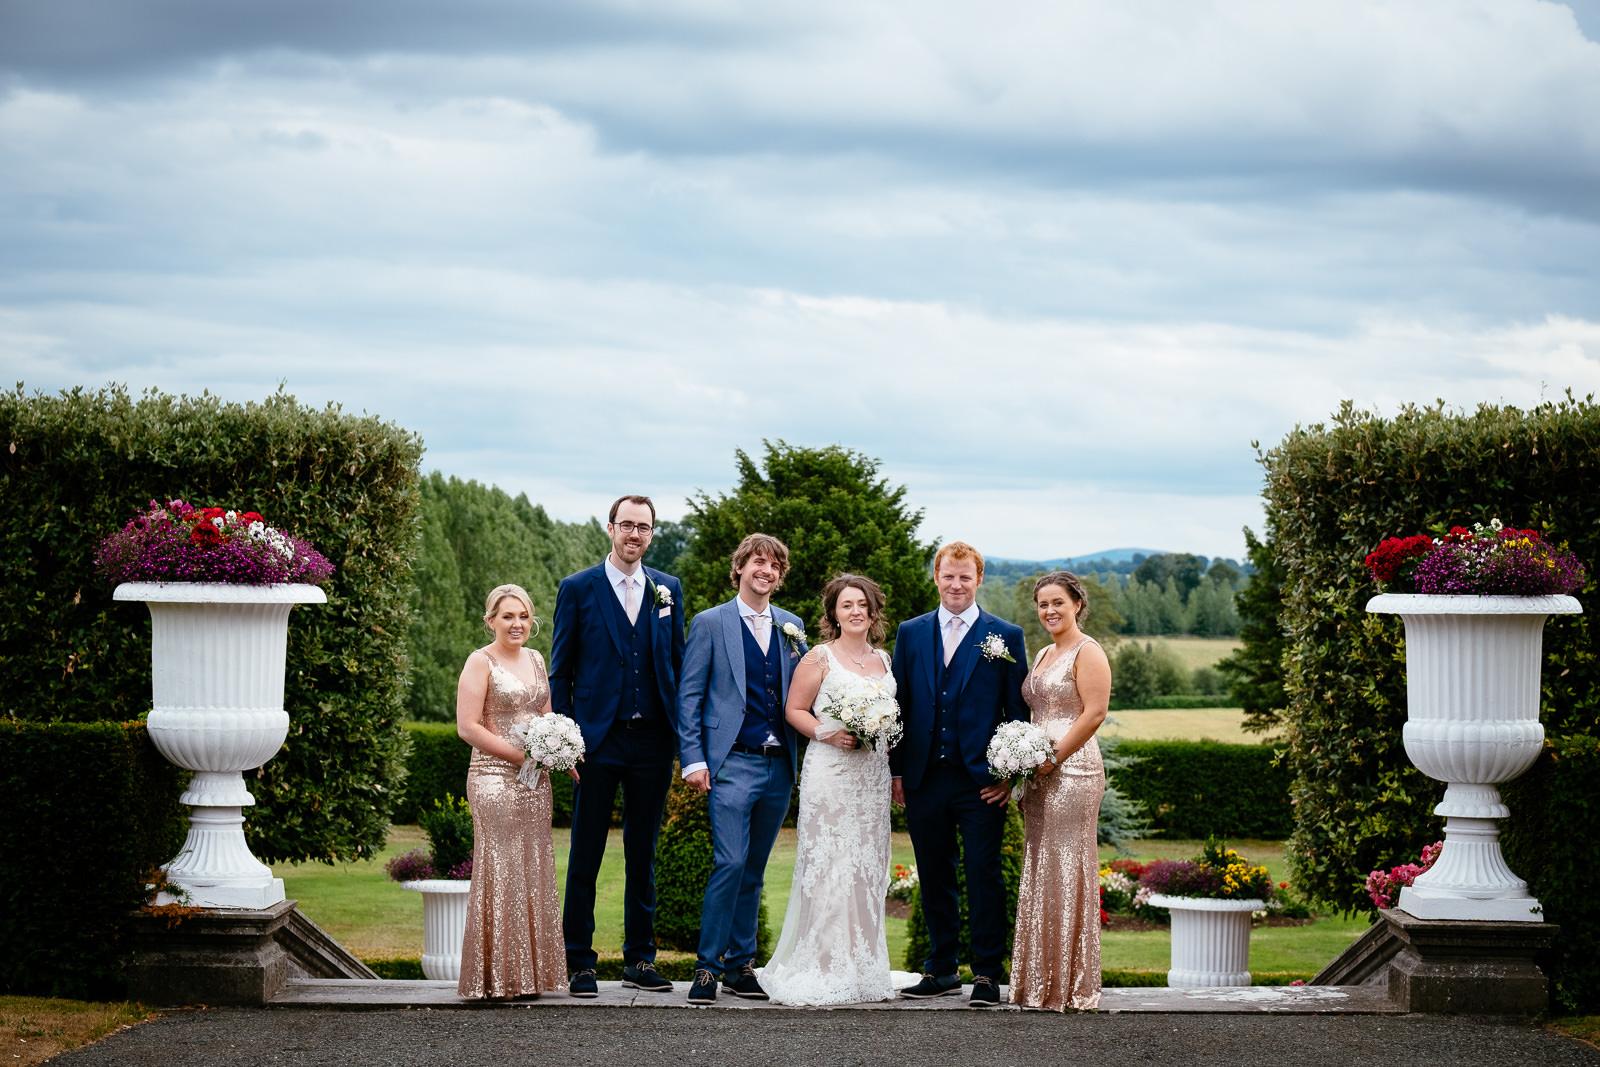 palmerstown estate wedding photographer kildare 1150